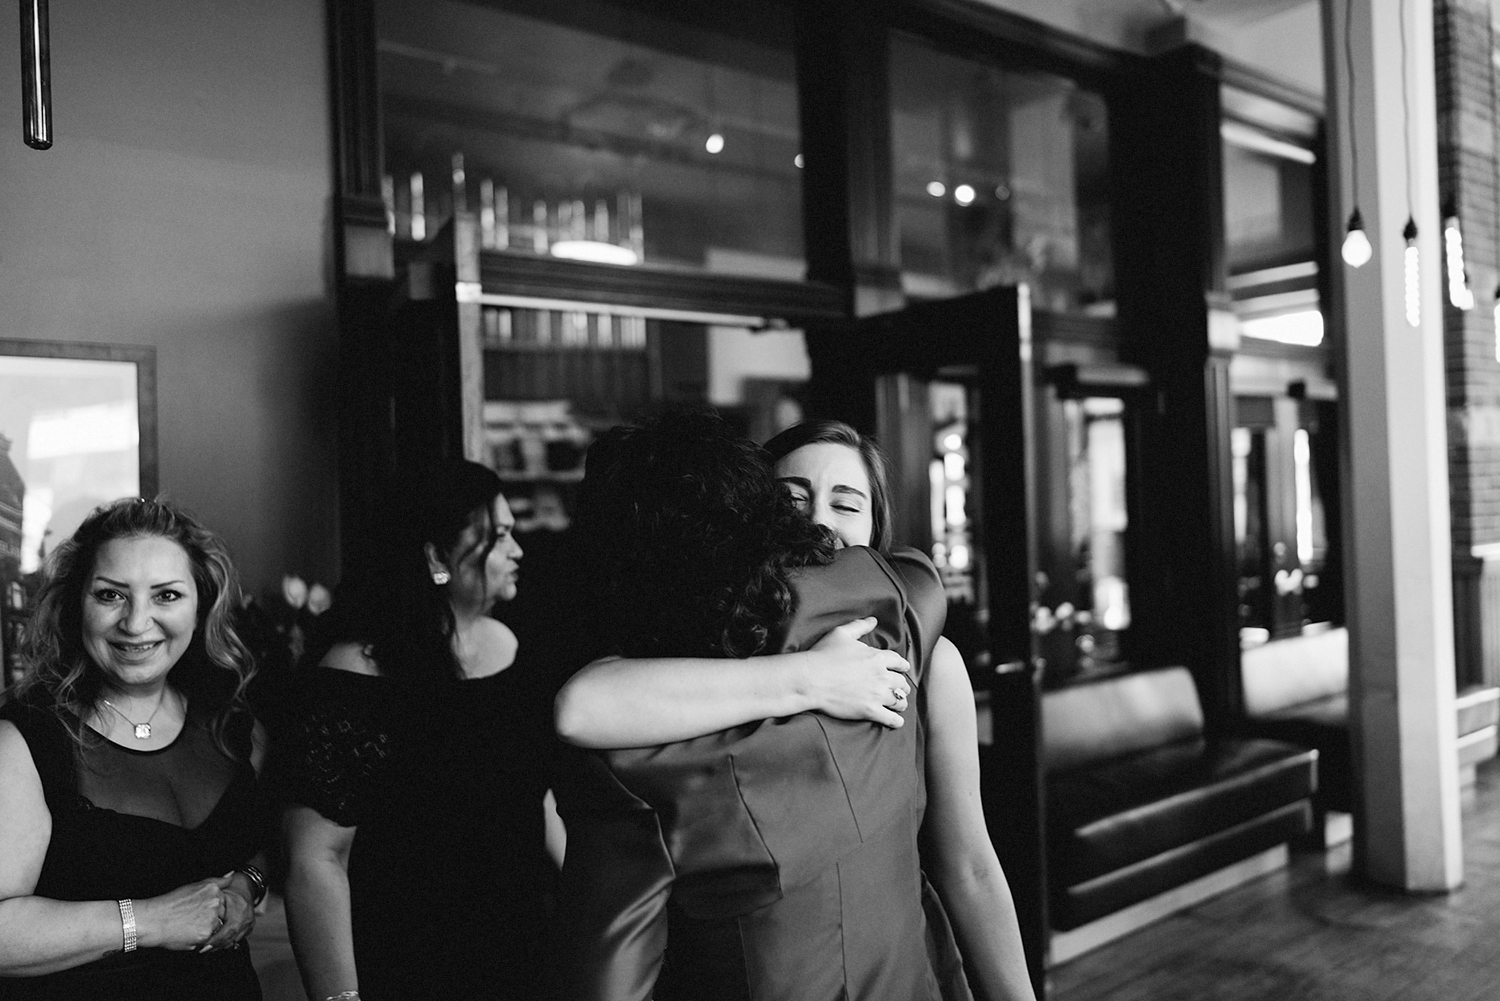 Best-Toronto-Wedding-Photographers-Afforadable-Candid-Photojournalistic-Photography-Toronto-Gladstone-Hotel-Wedding-Venue-Downtown-Urban-Brunch-Wedding-Inspiration-persian-ceremony-gettings-hugging.jpg